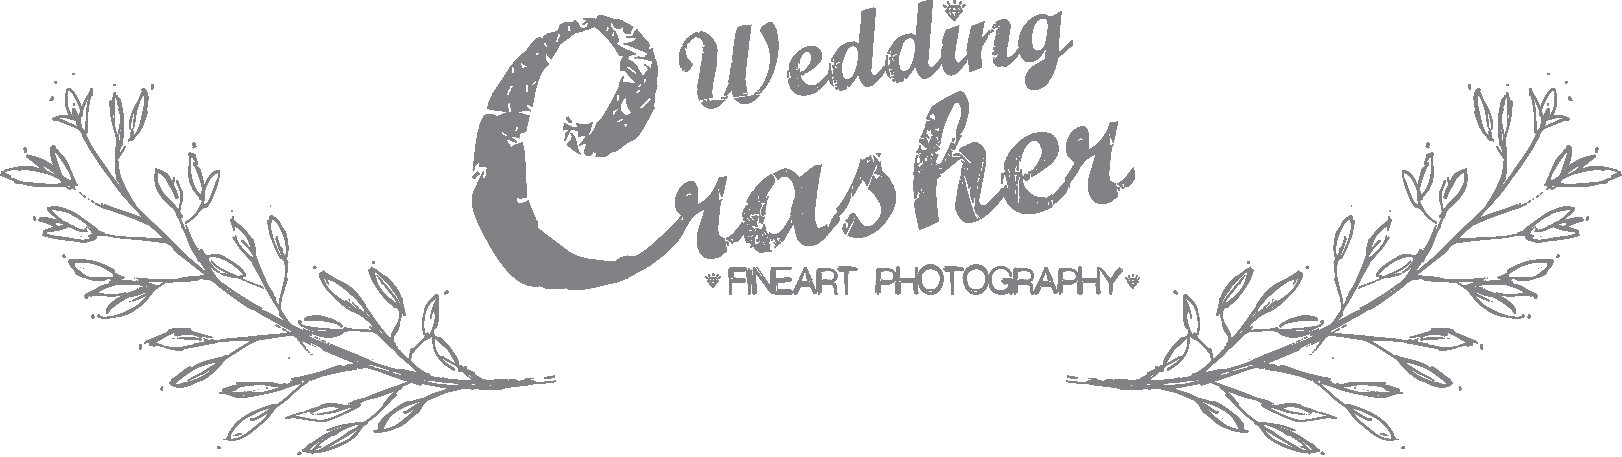 Wedding-Crasher